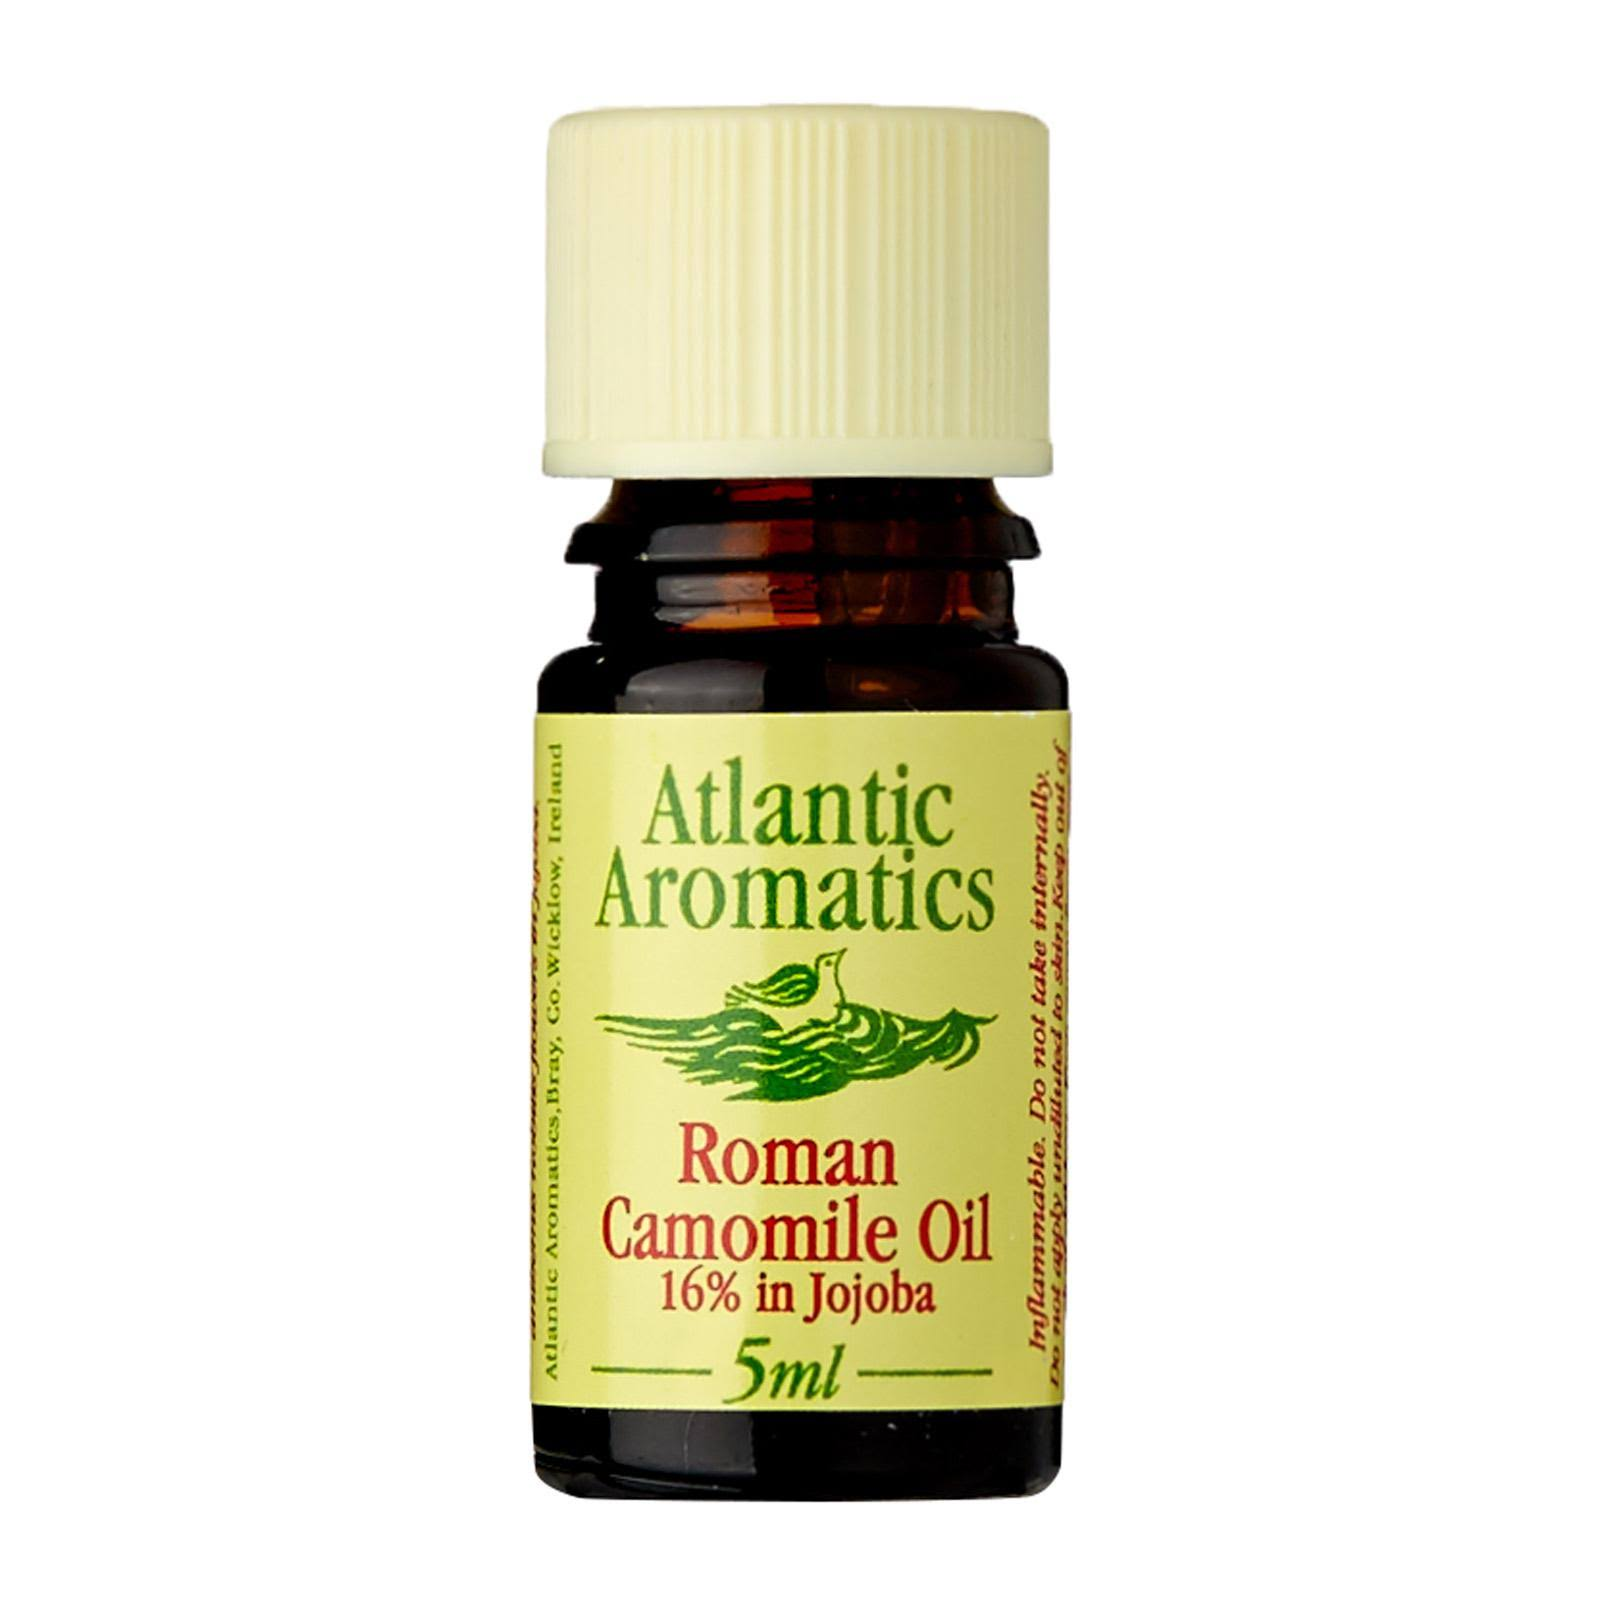 Atlantic Aromatics Roman Camomile Oil